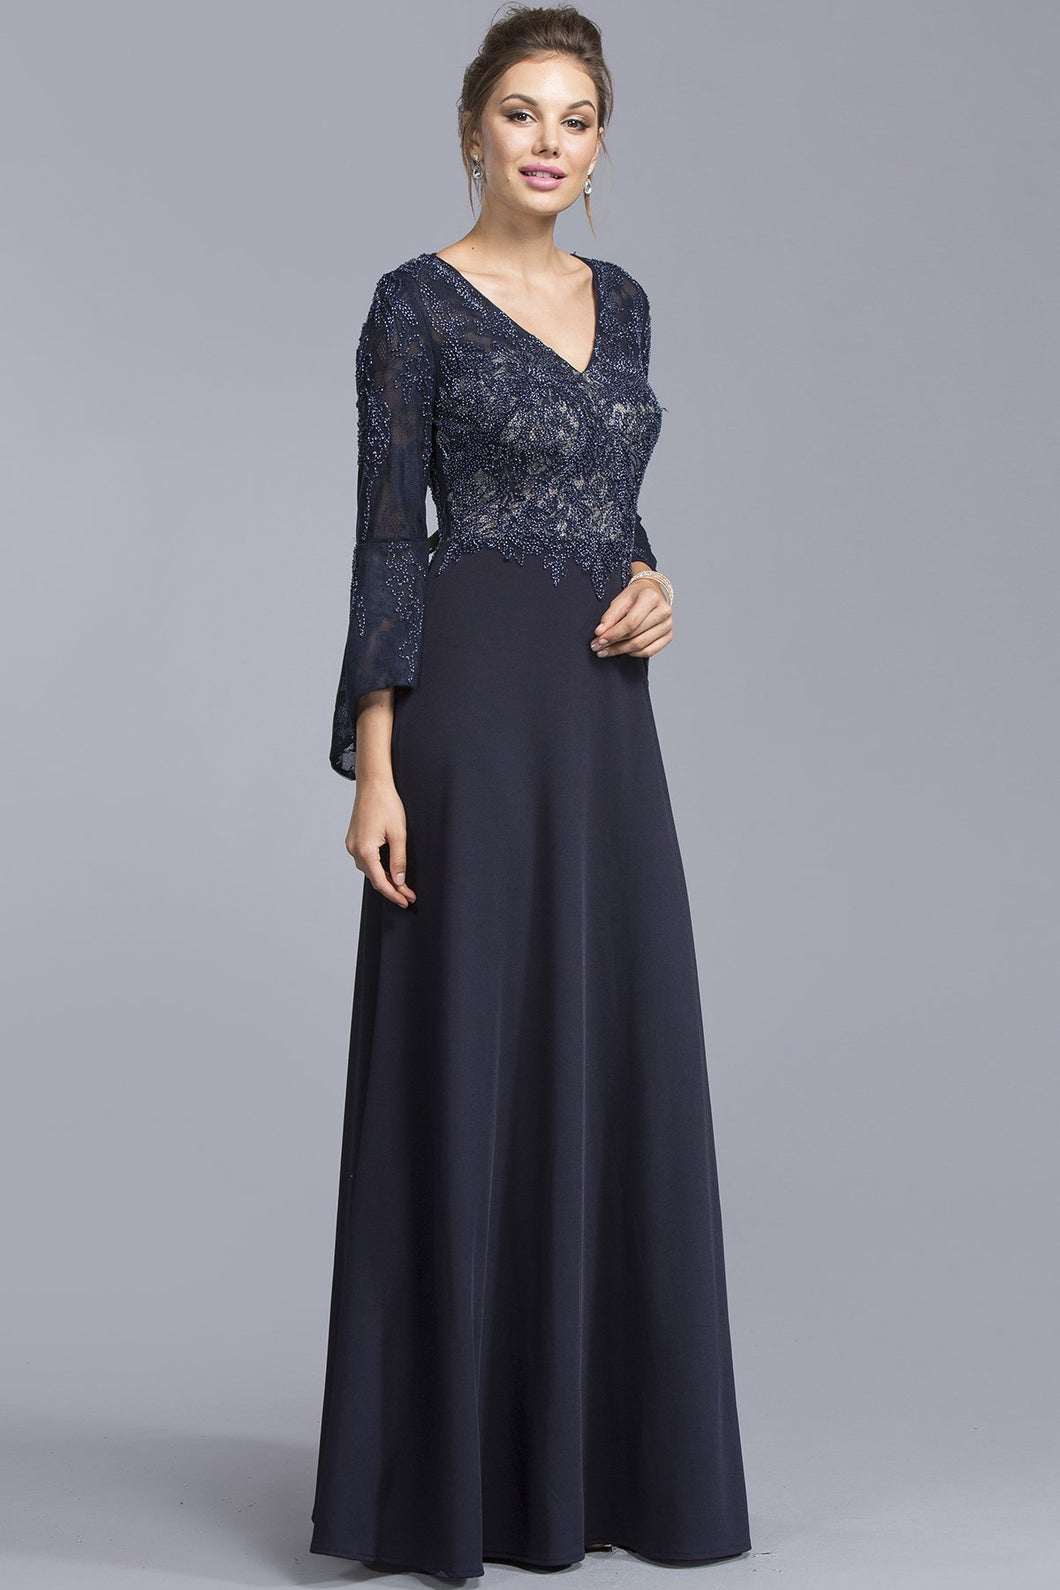 V-neck A-line Cute Long Gowns With Long Sleeves APM1924-Prom Dresses-smcfashion.com